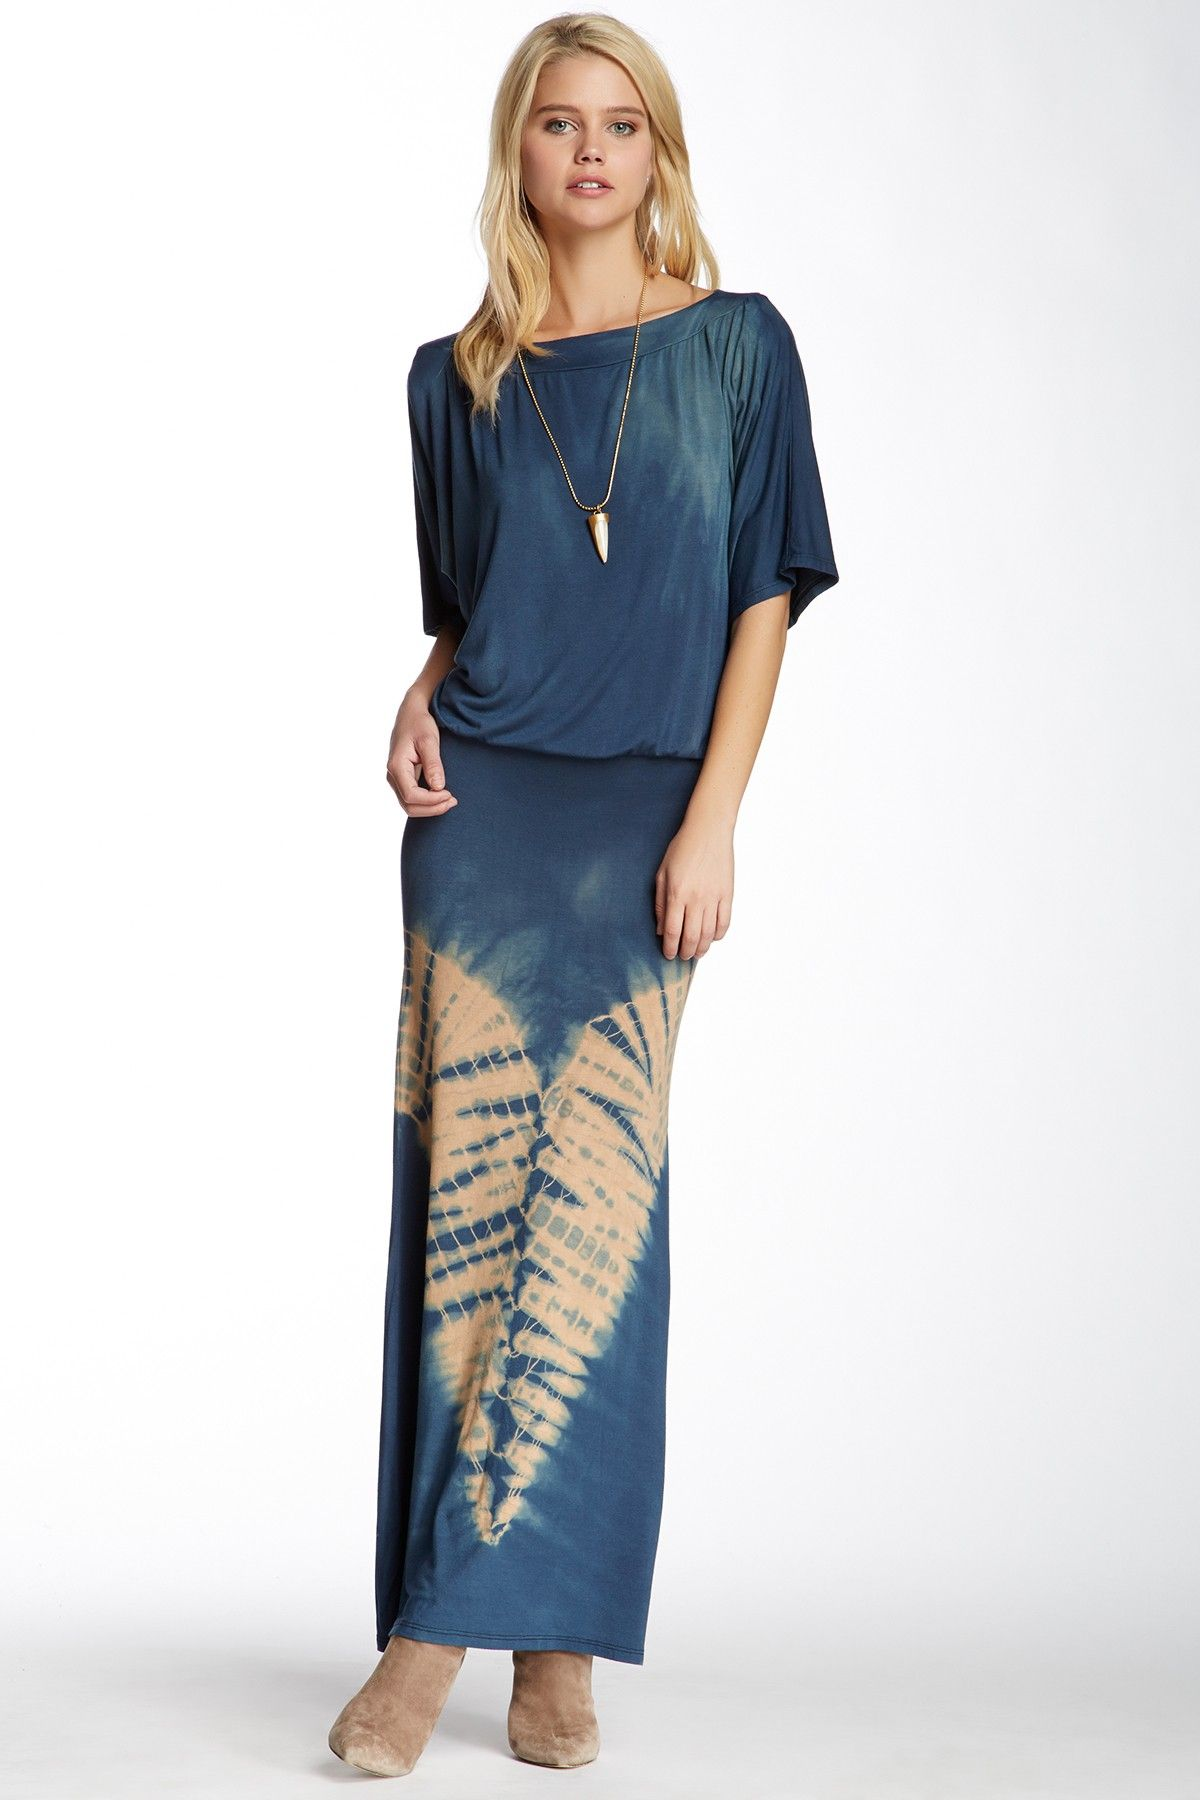 b3466b9006 Tie-Dye Short Sleeve Maxi Dress by Go Couture on  HauteLook